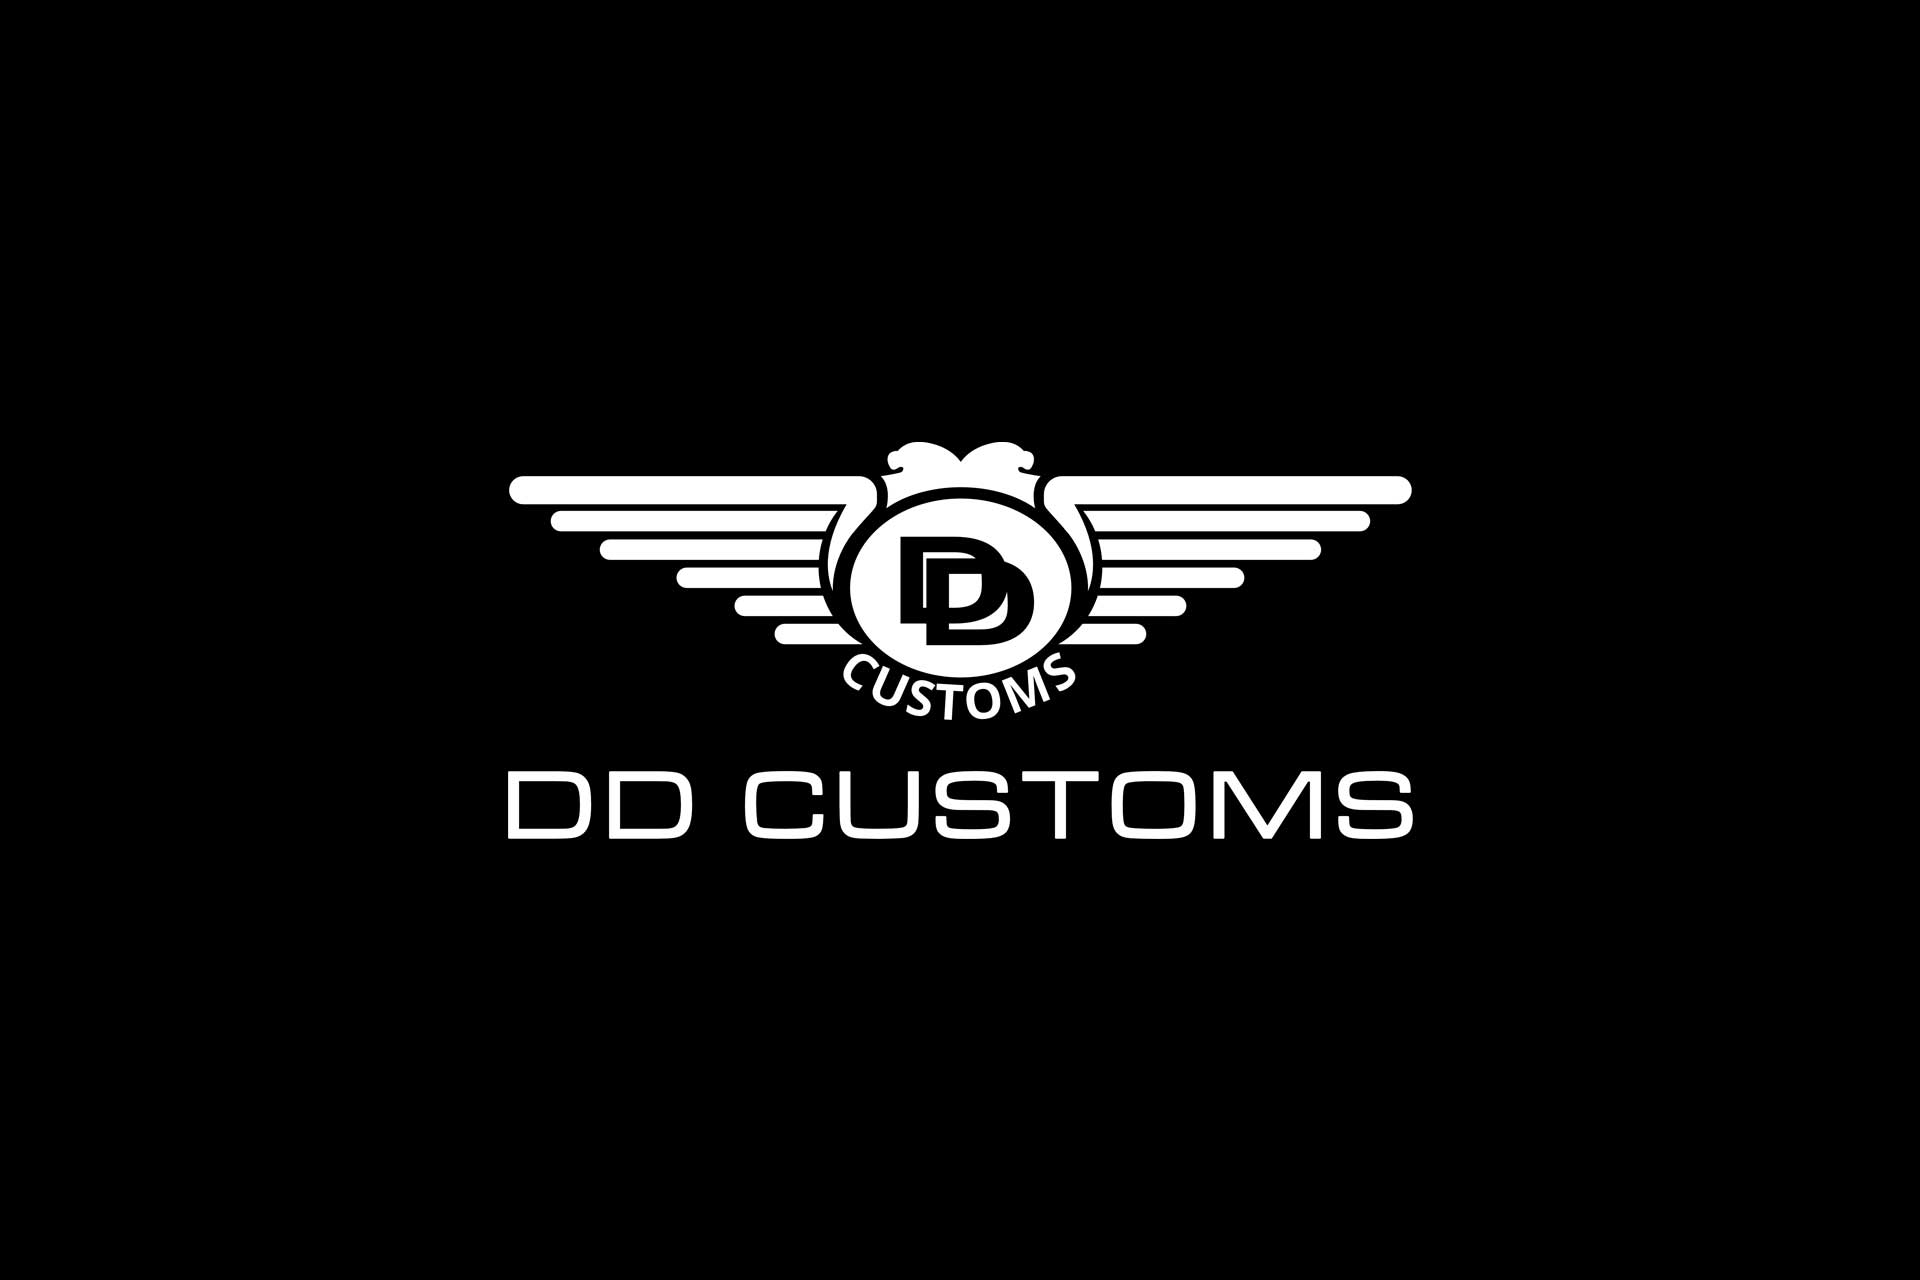 DD Customs Hamburg